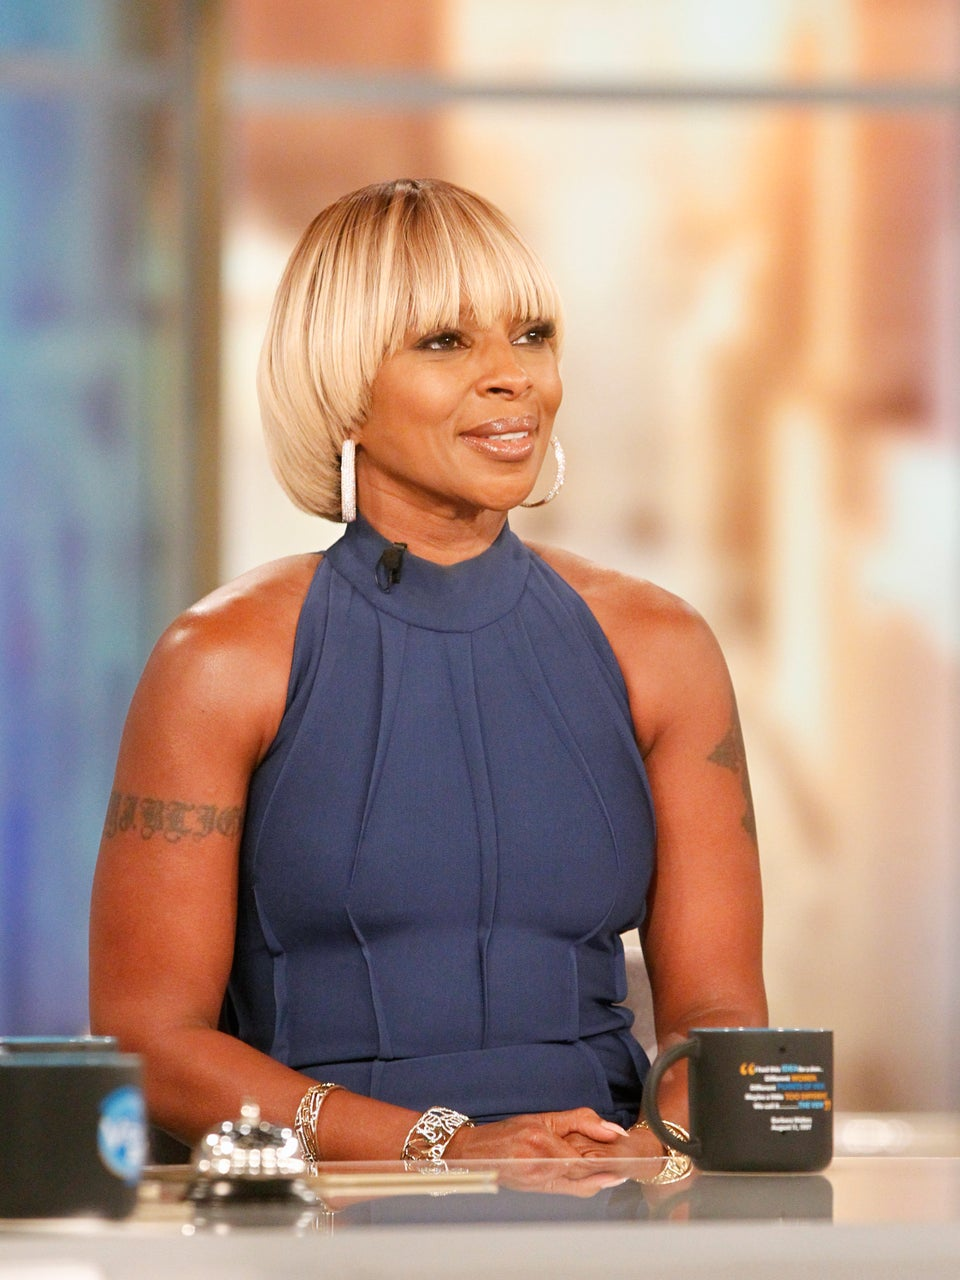 The Internet Is Having A Field Day With This This Mary J. Blige, Clinton Interview